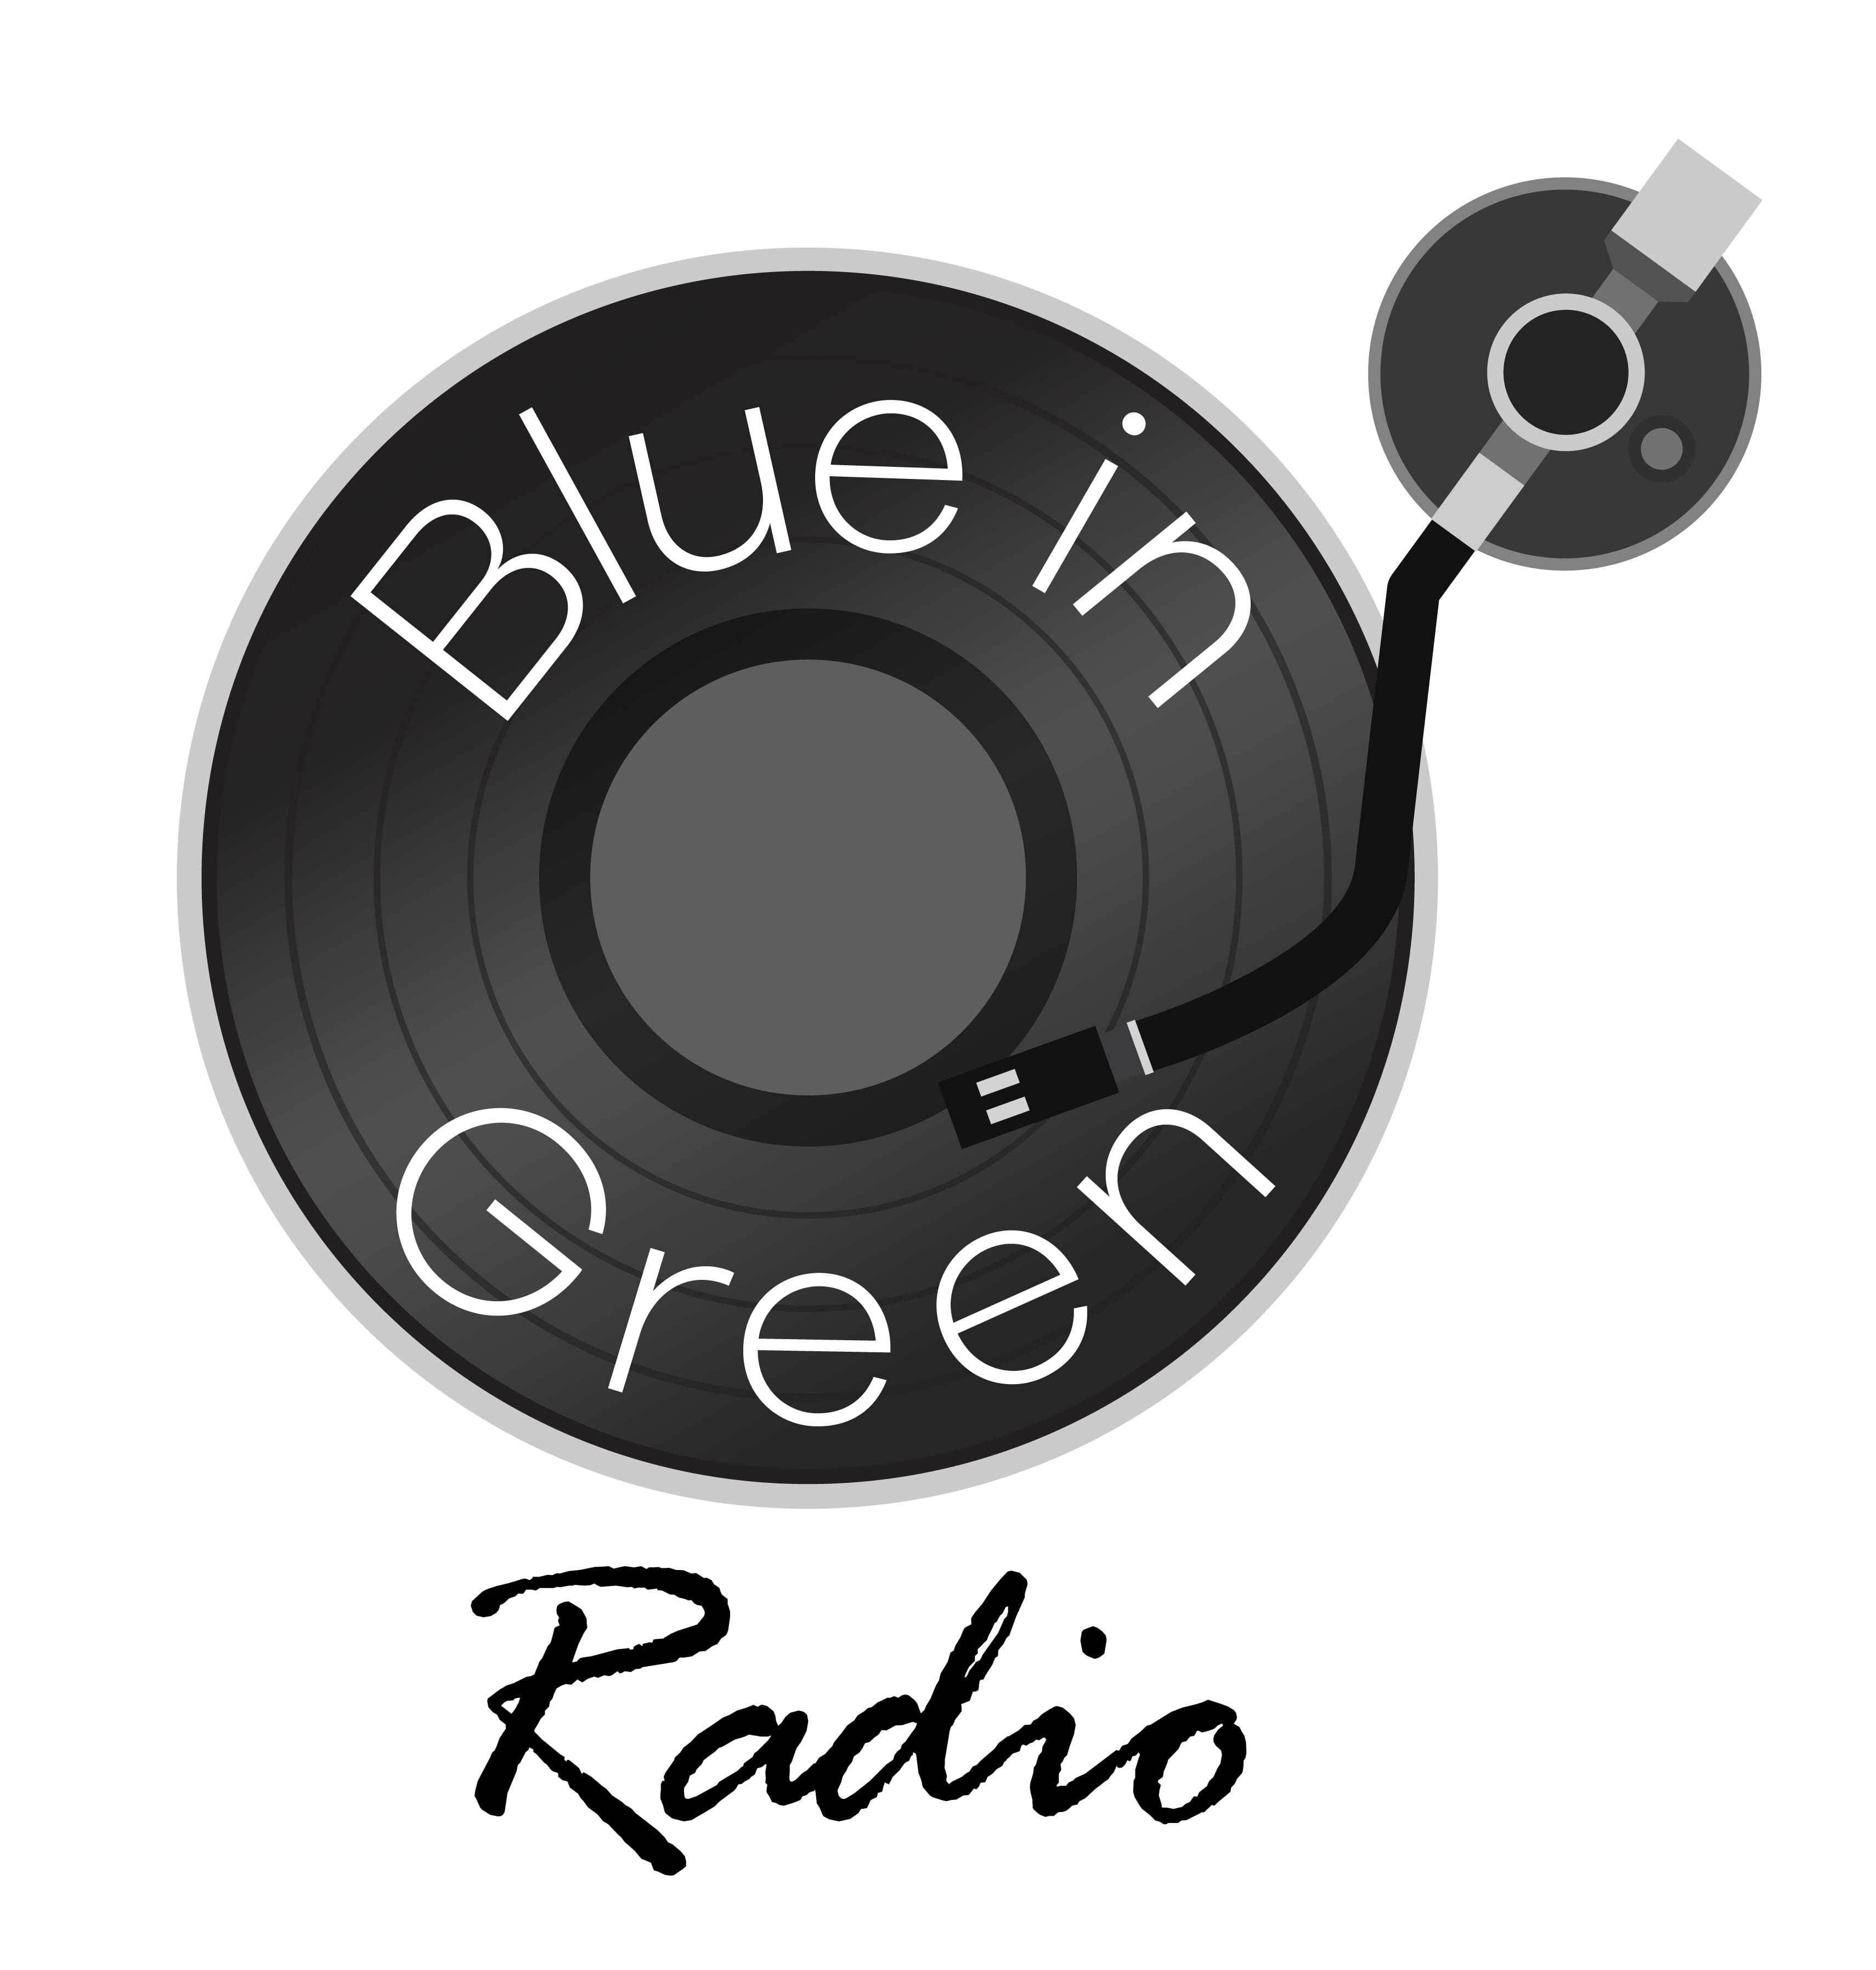 Listen to Blue-in-green:radio